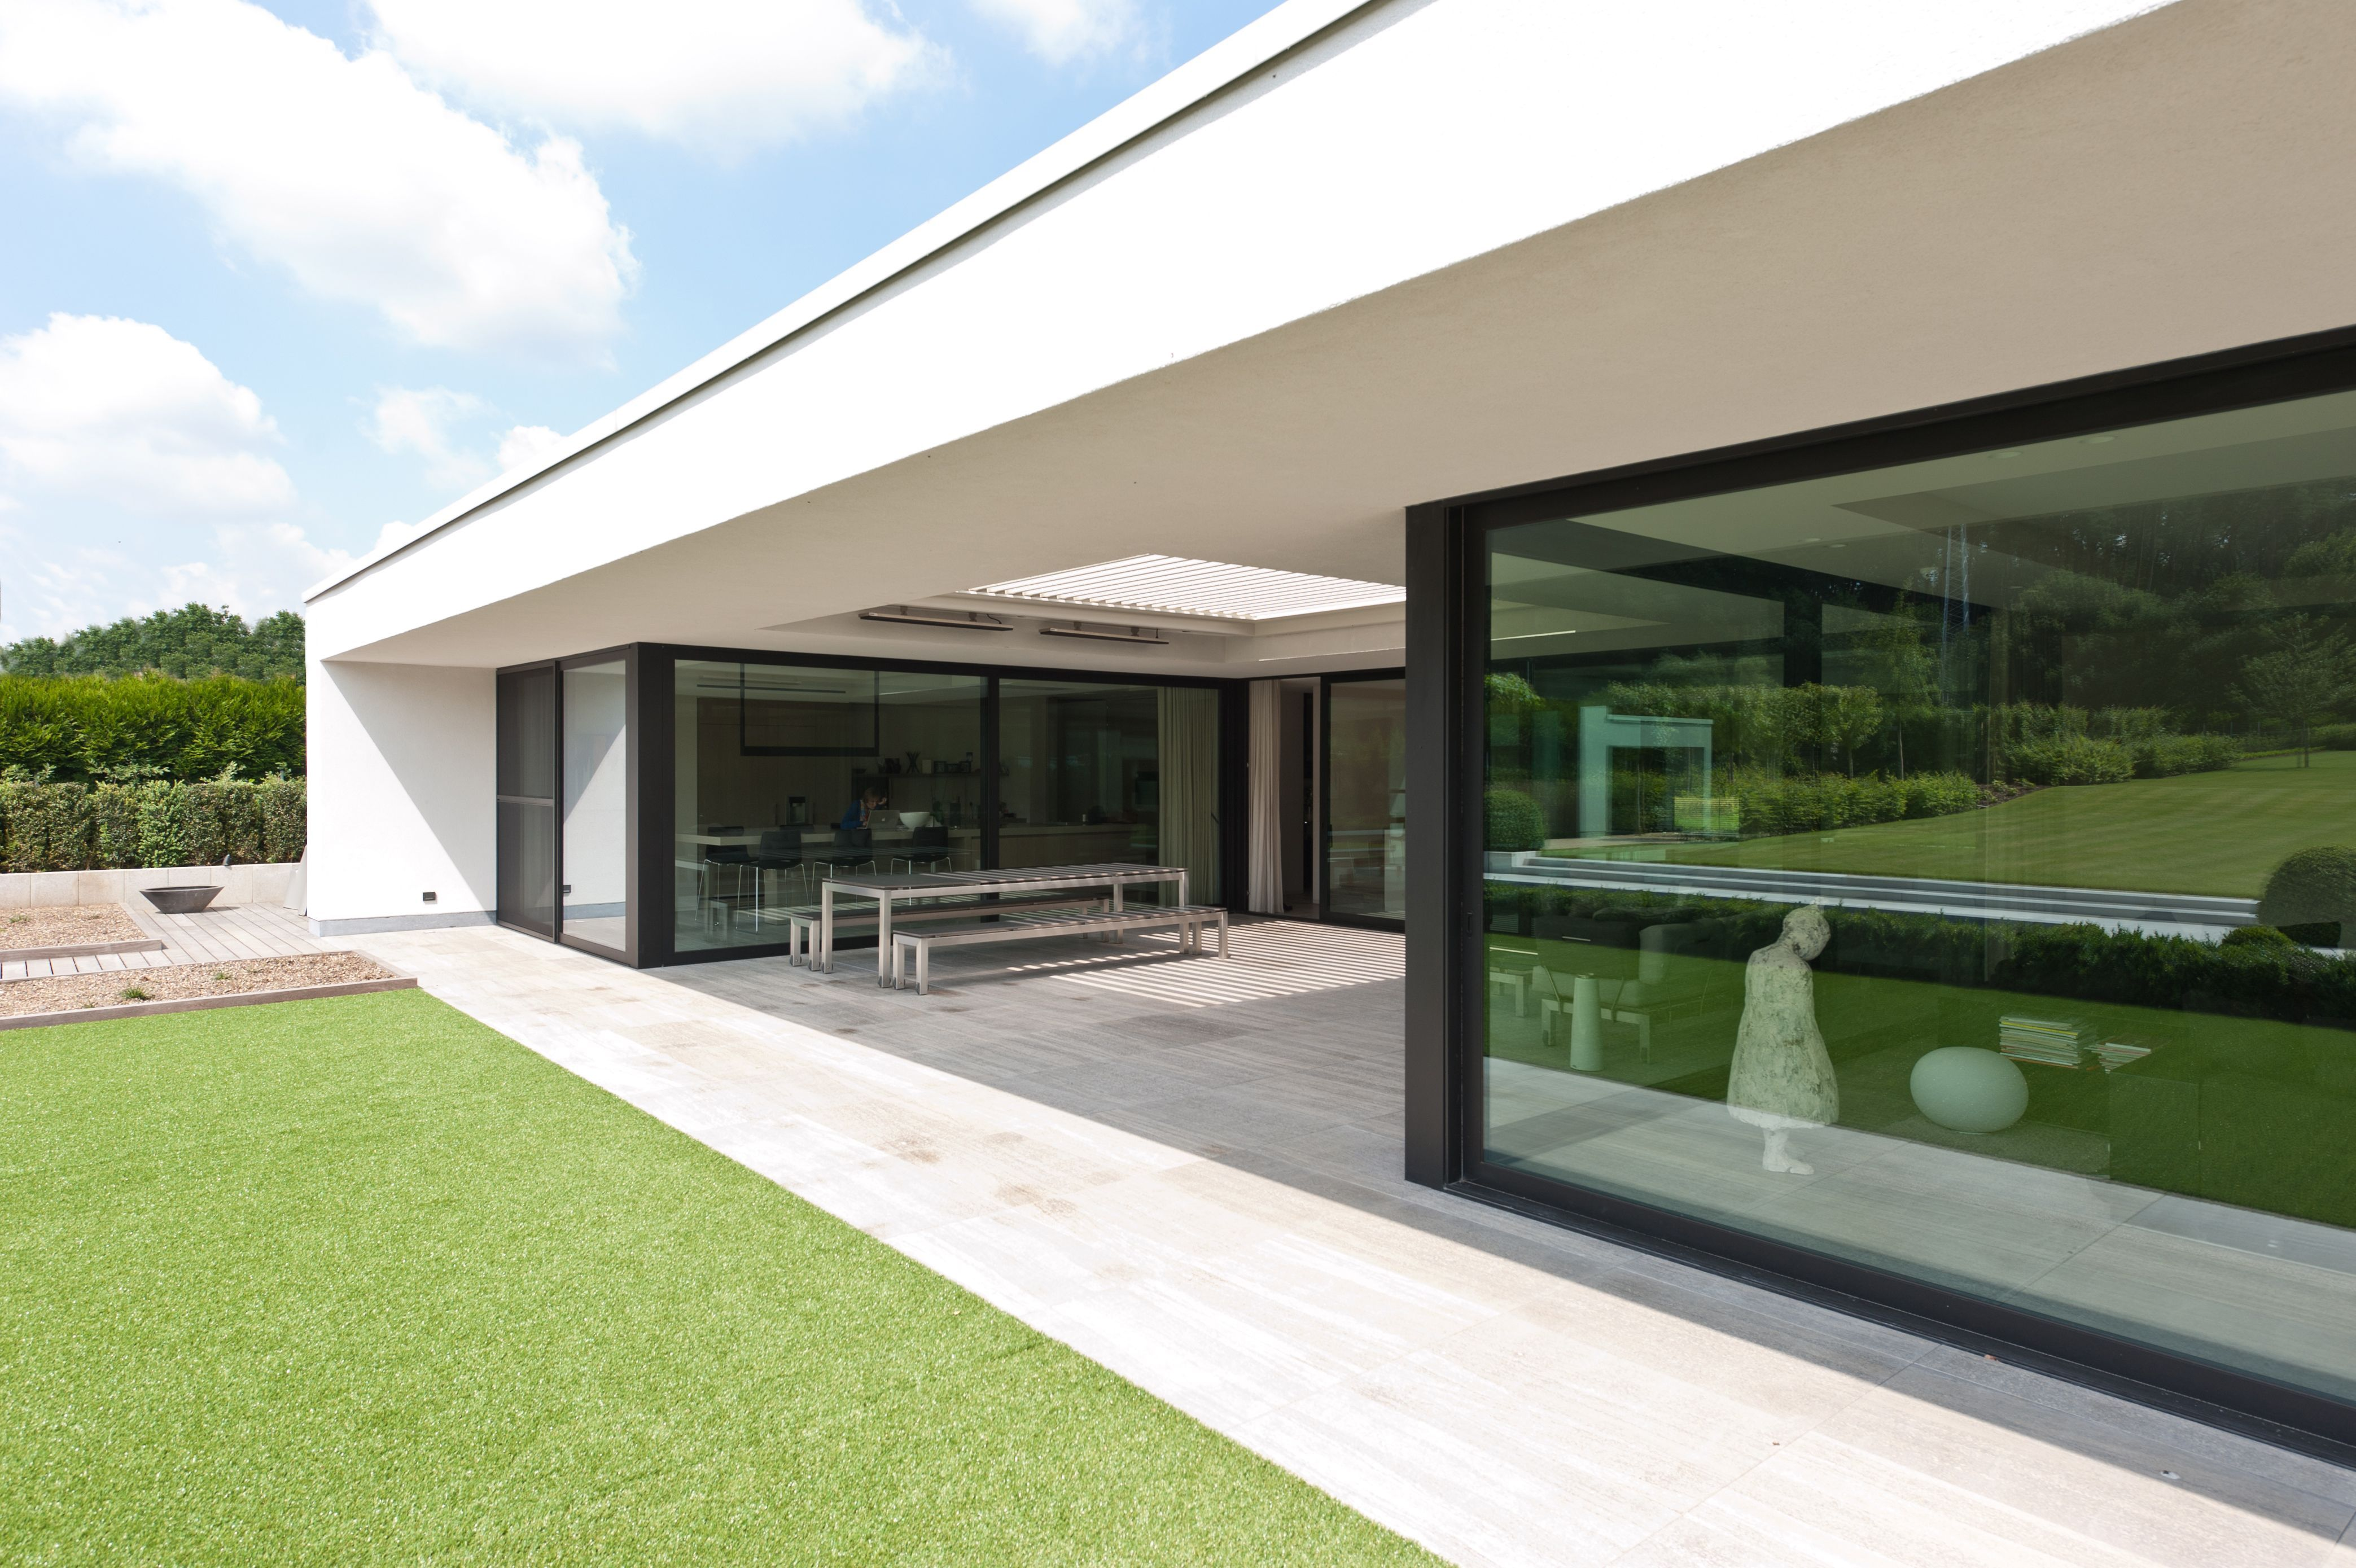 A Louvre Roof By Livium, Truly An Extension Of The